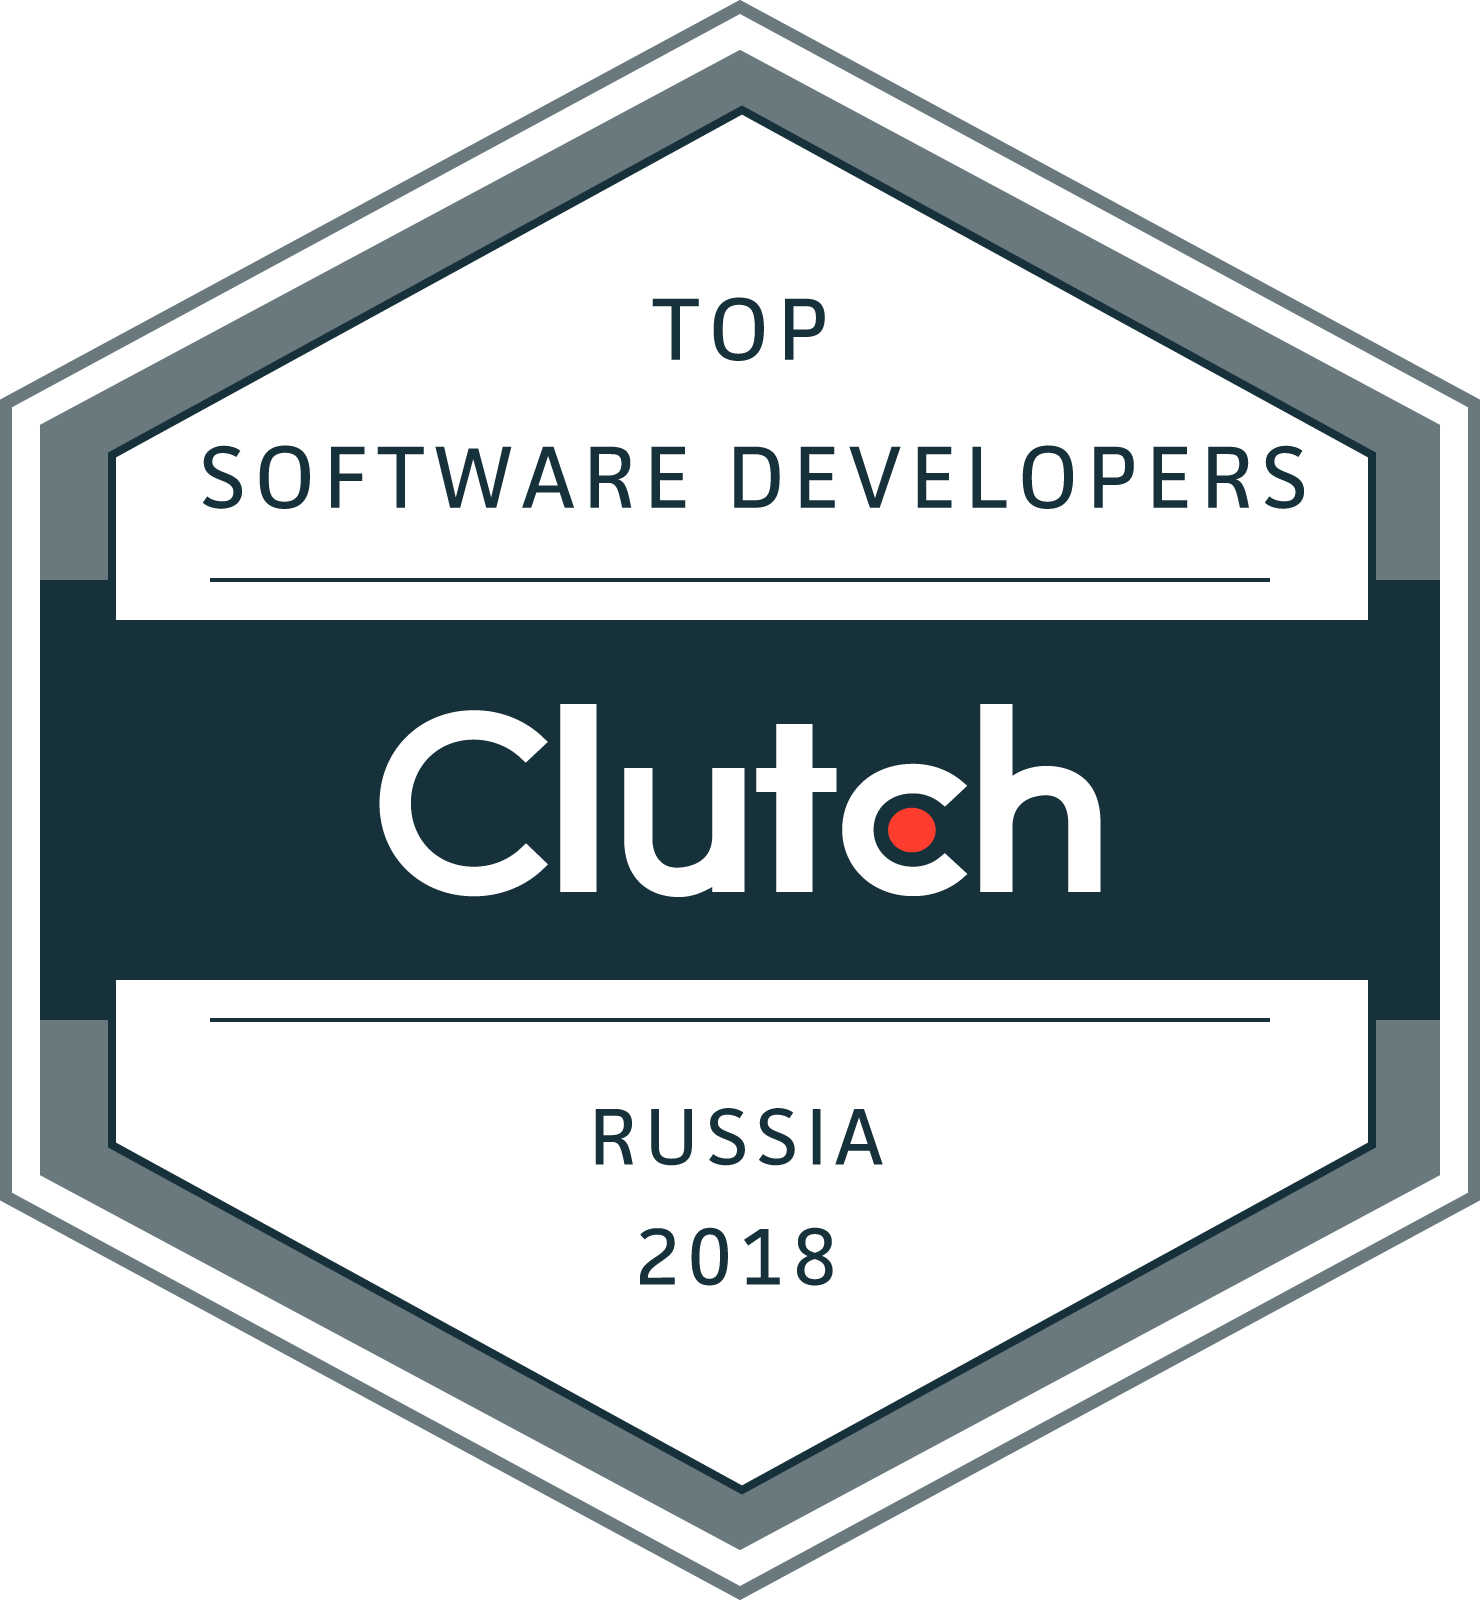 Top Software Developers Russia 2018